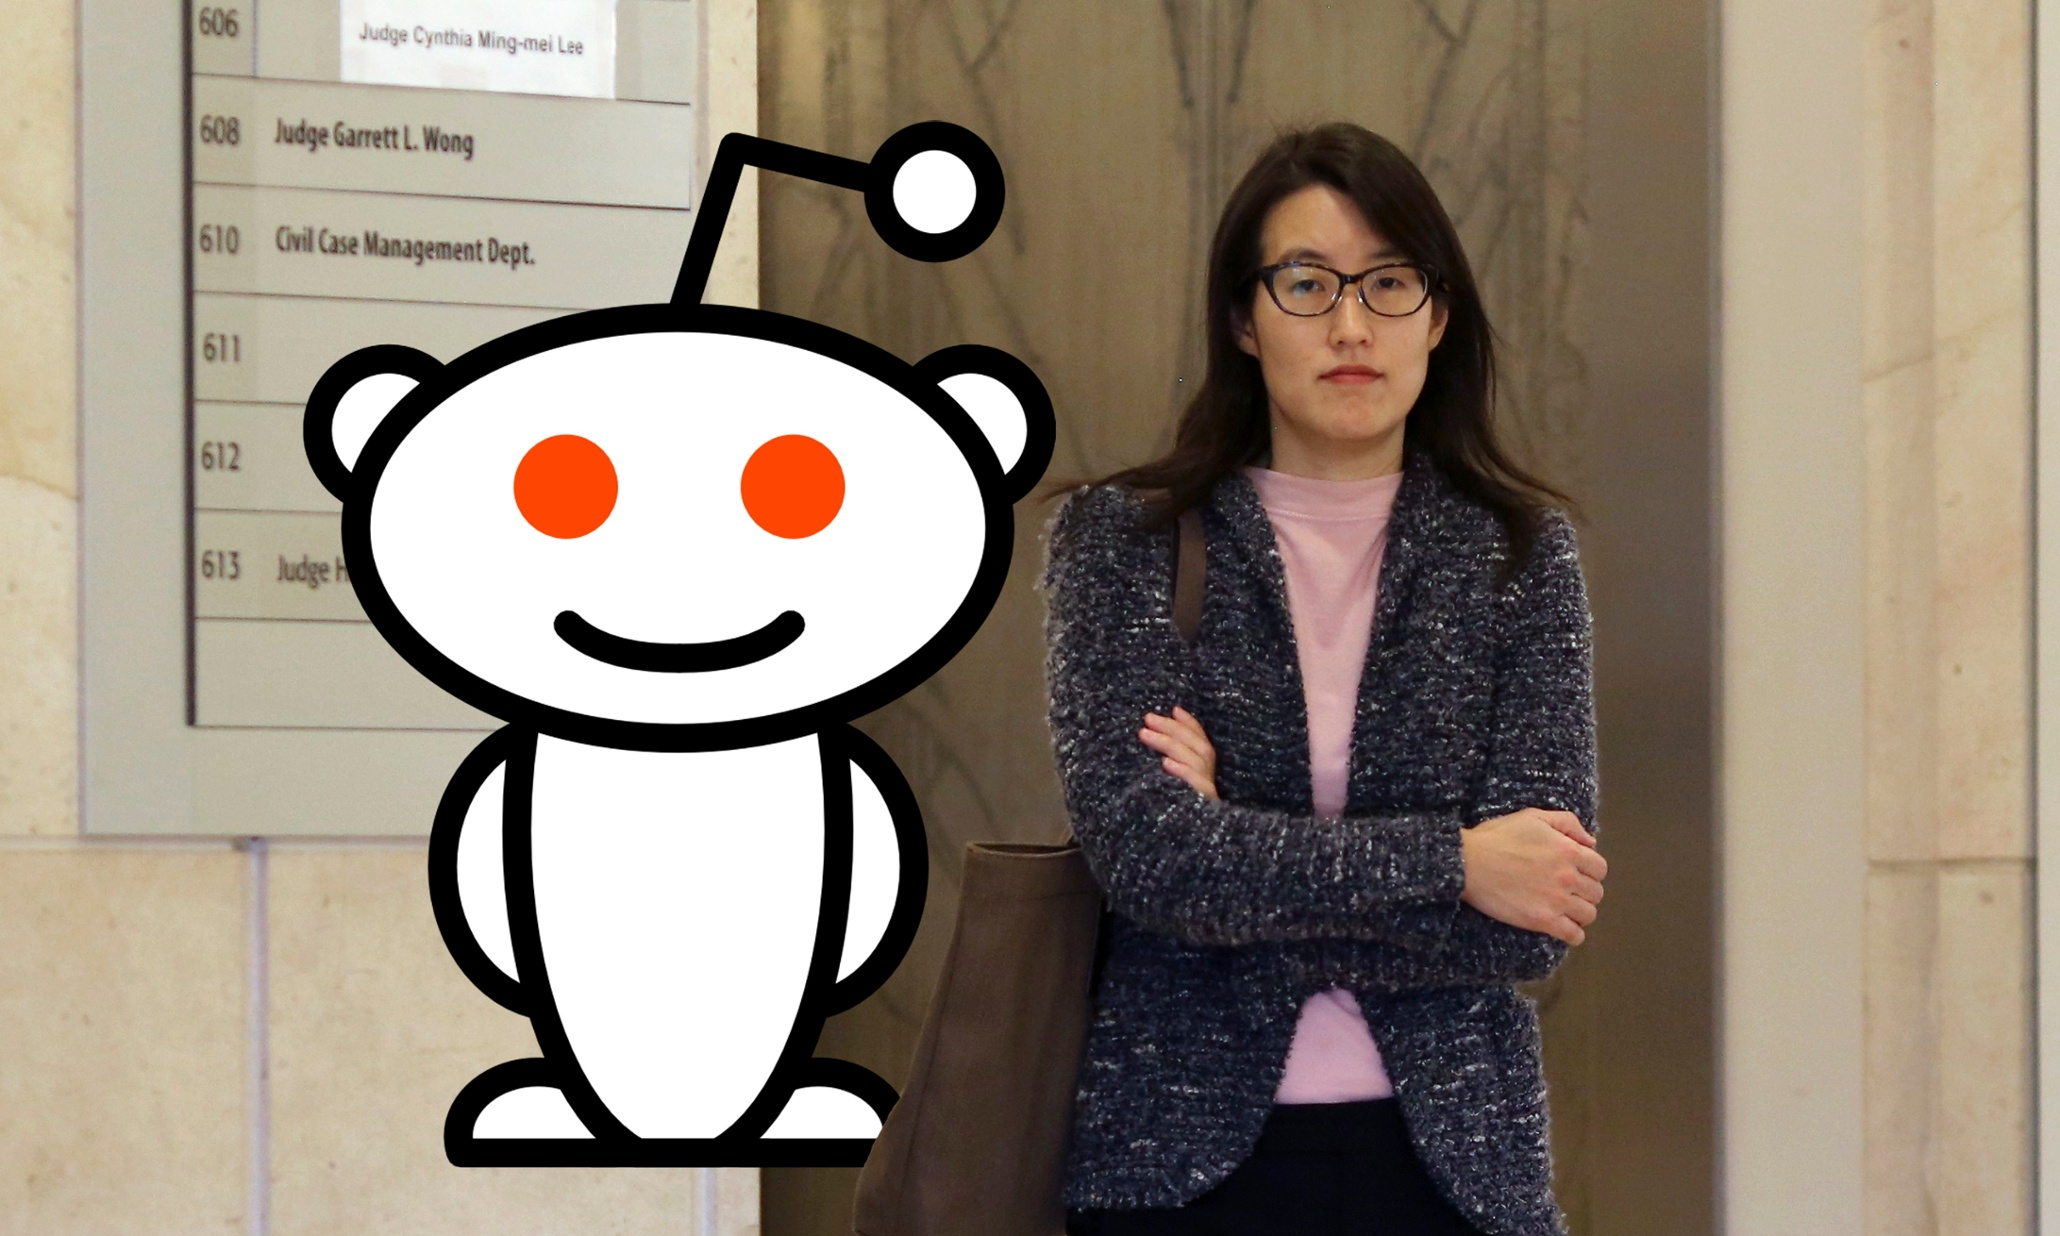 Reddit: can anyone clean up the mess behind 'the front page of the internet'?